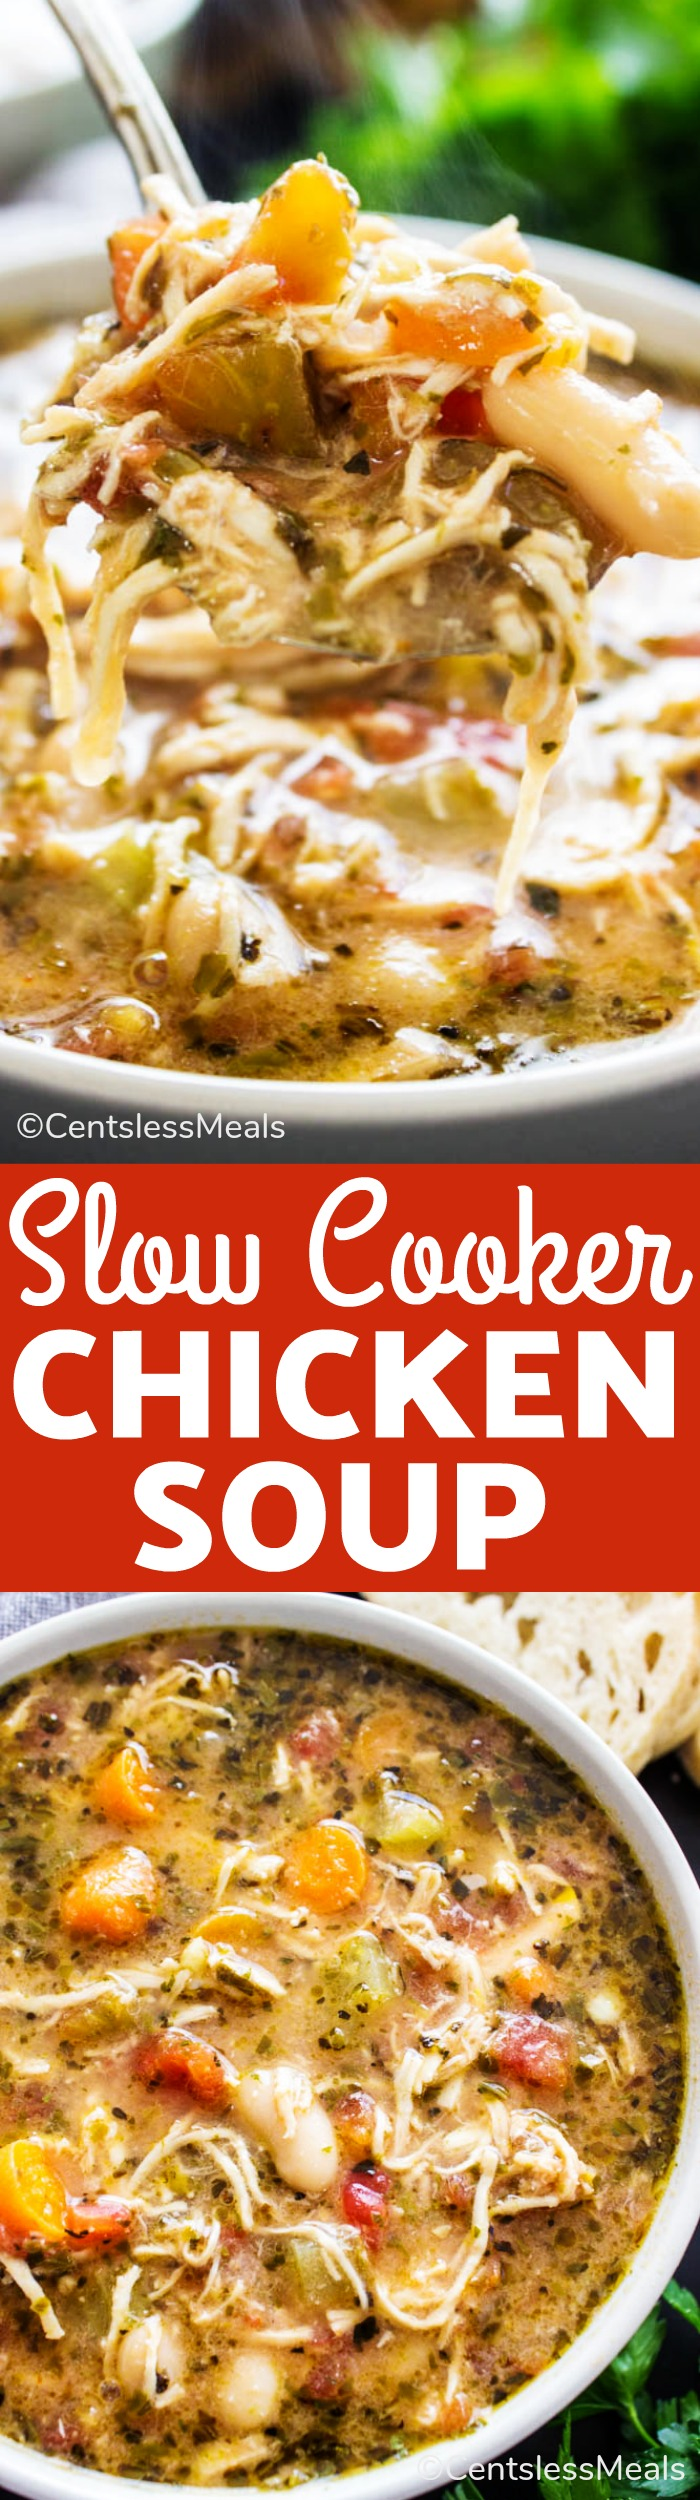 This Slow Cooker Chicken Soup is so easy to make! Loaded with carrots, celery, onion, garlic, tomatoes and cannellini beans this wholesome and filling soup is insanely delicious. #centslessmeals #slowcookermeals #easyrecipe #chickensoup #vegetablesoup #nutritiousrecipe #healthyeating